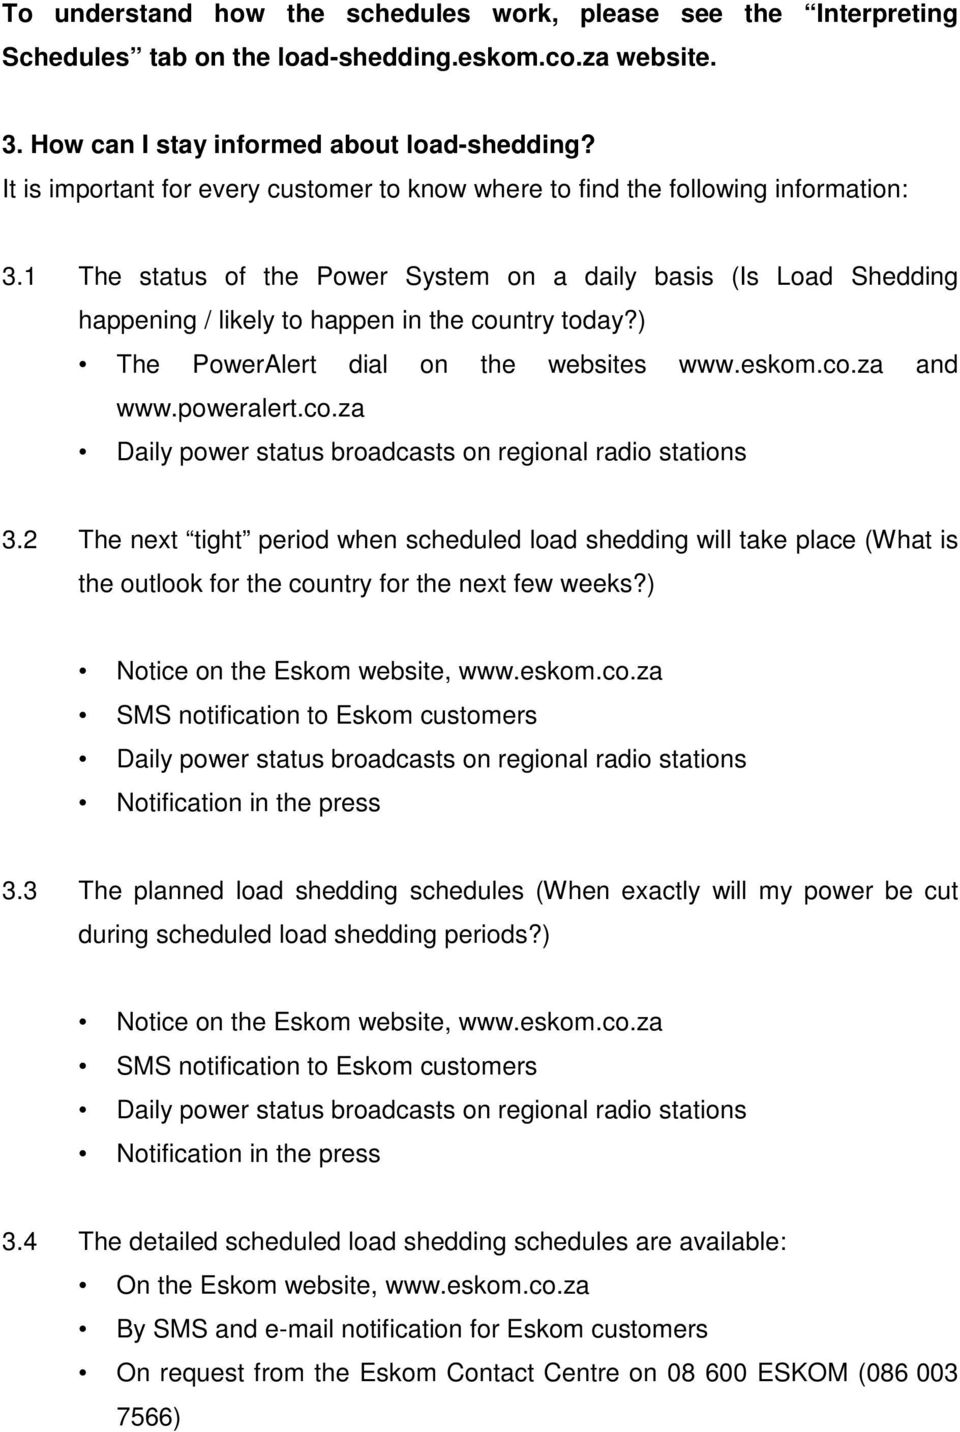 1 The status of the Power System on a daily basis (Is Load Shedding happening / likely to happen in the country today?) The PowerAlert dial on the websites www.eskom.co.za and www.poweralert.co.za Daily power status broadcasts on regional radio stations 3.